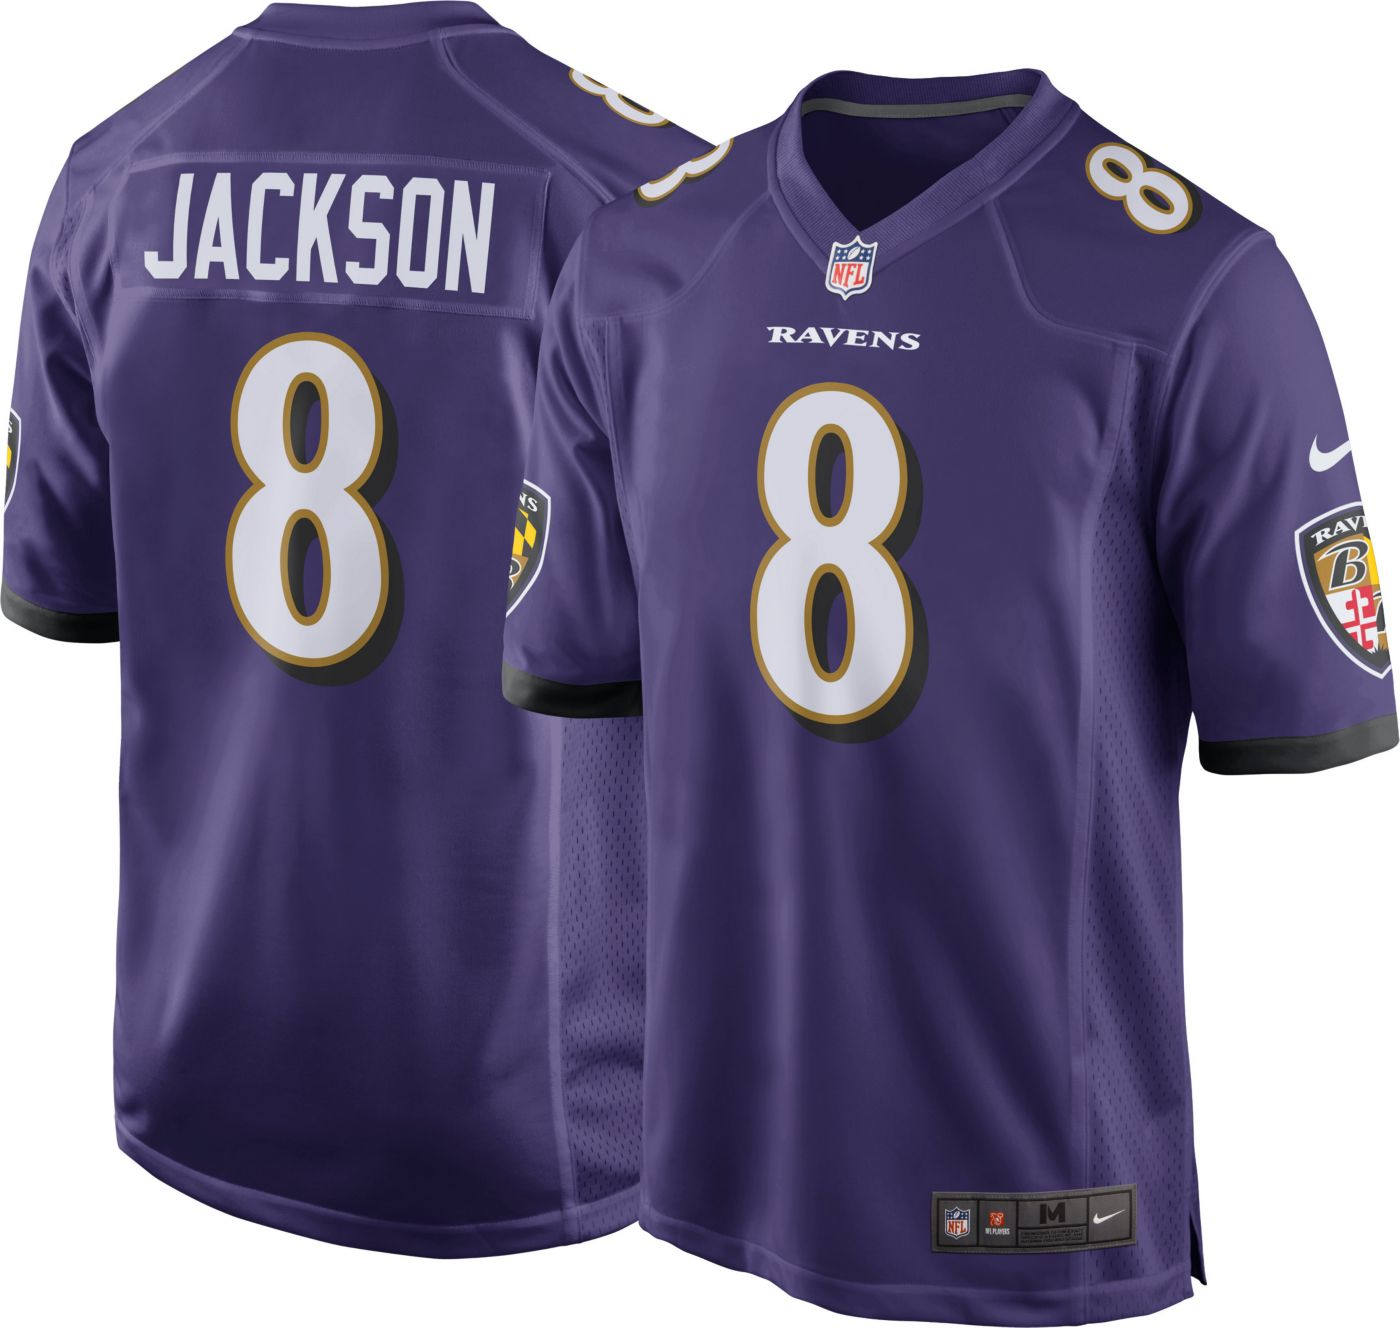 Lamar Jackson #8 Nike Men's Baltimore Ravens Home Game Jersey